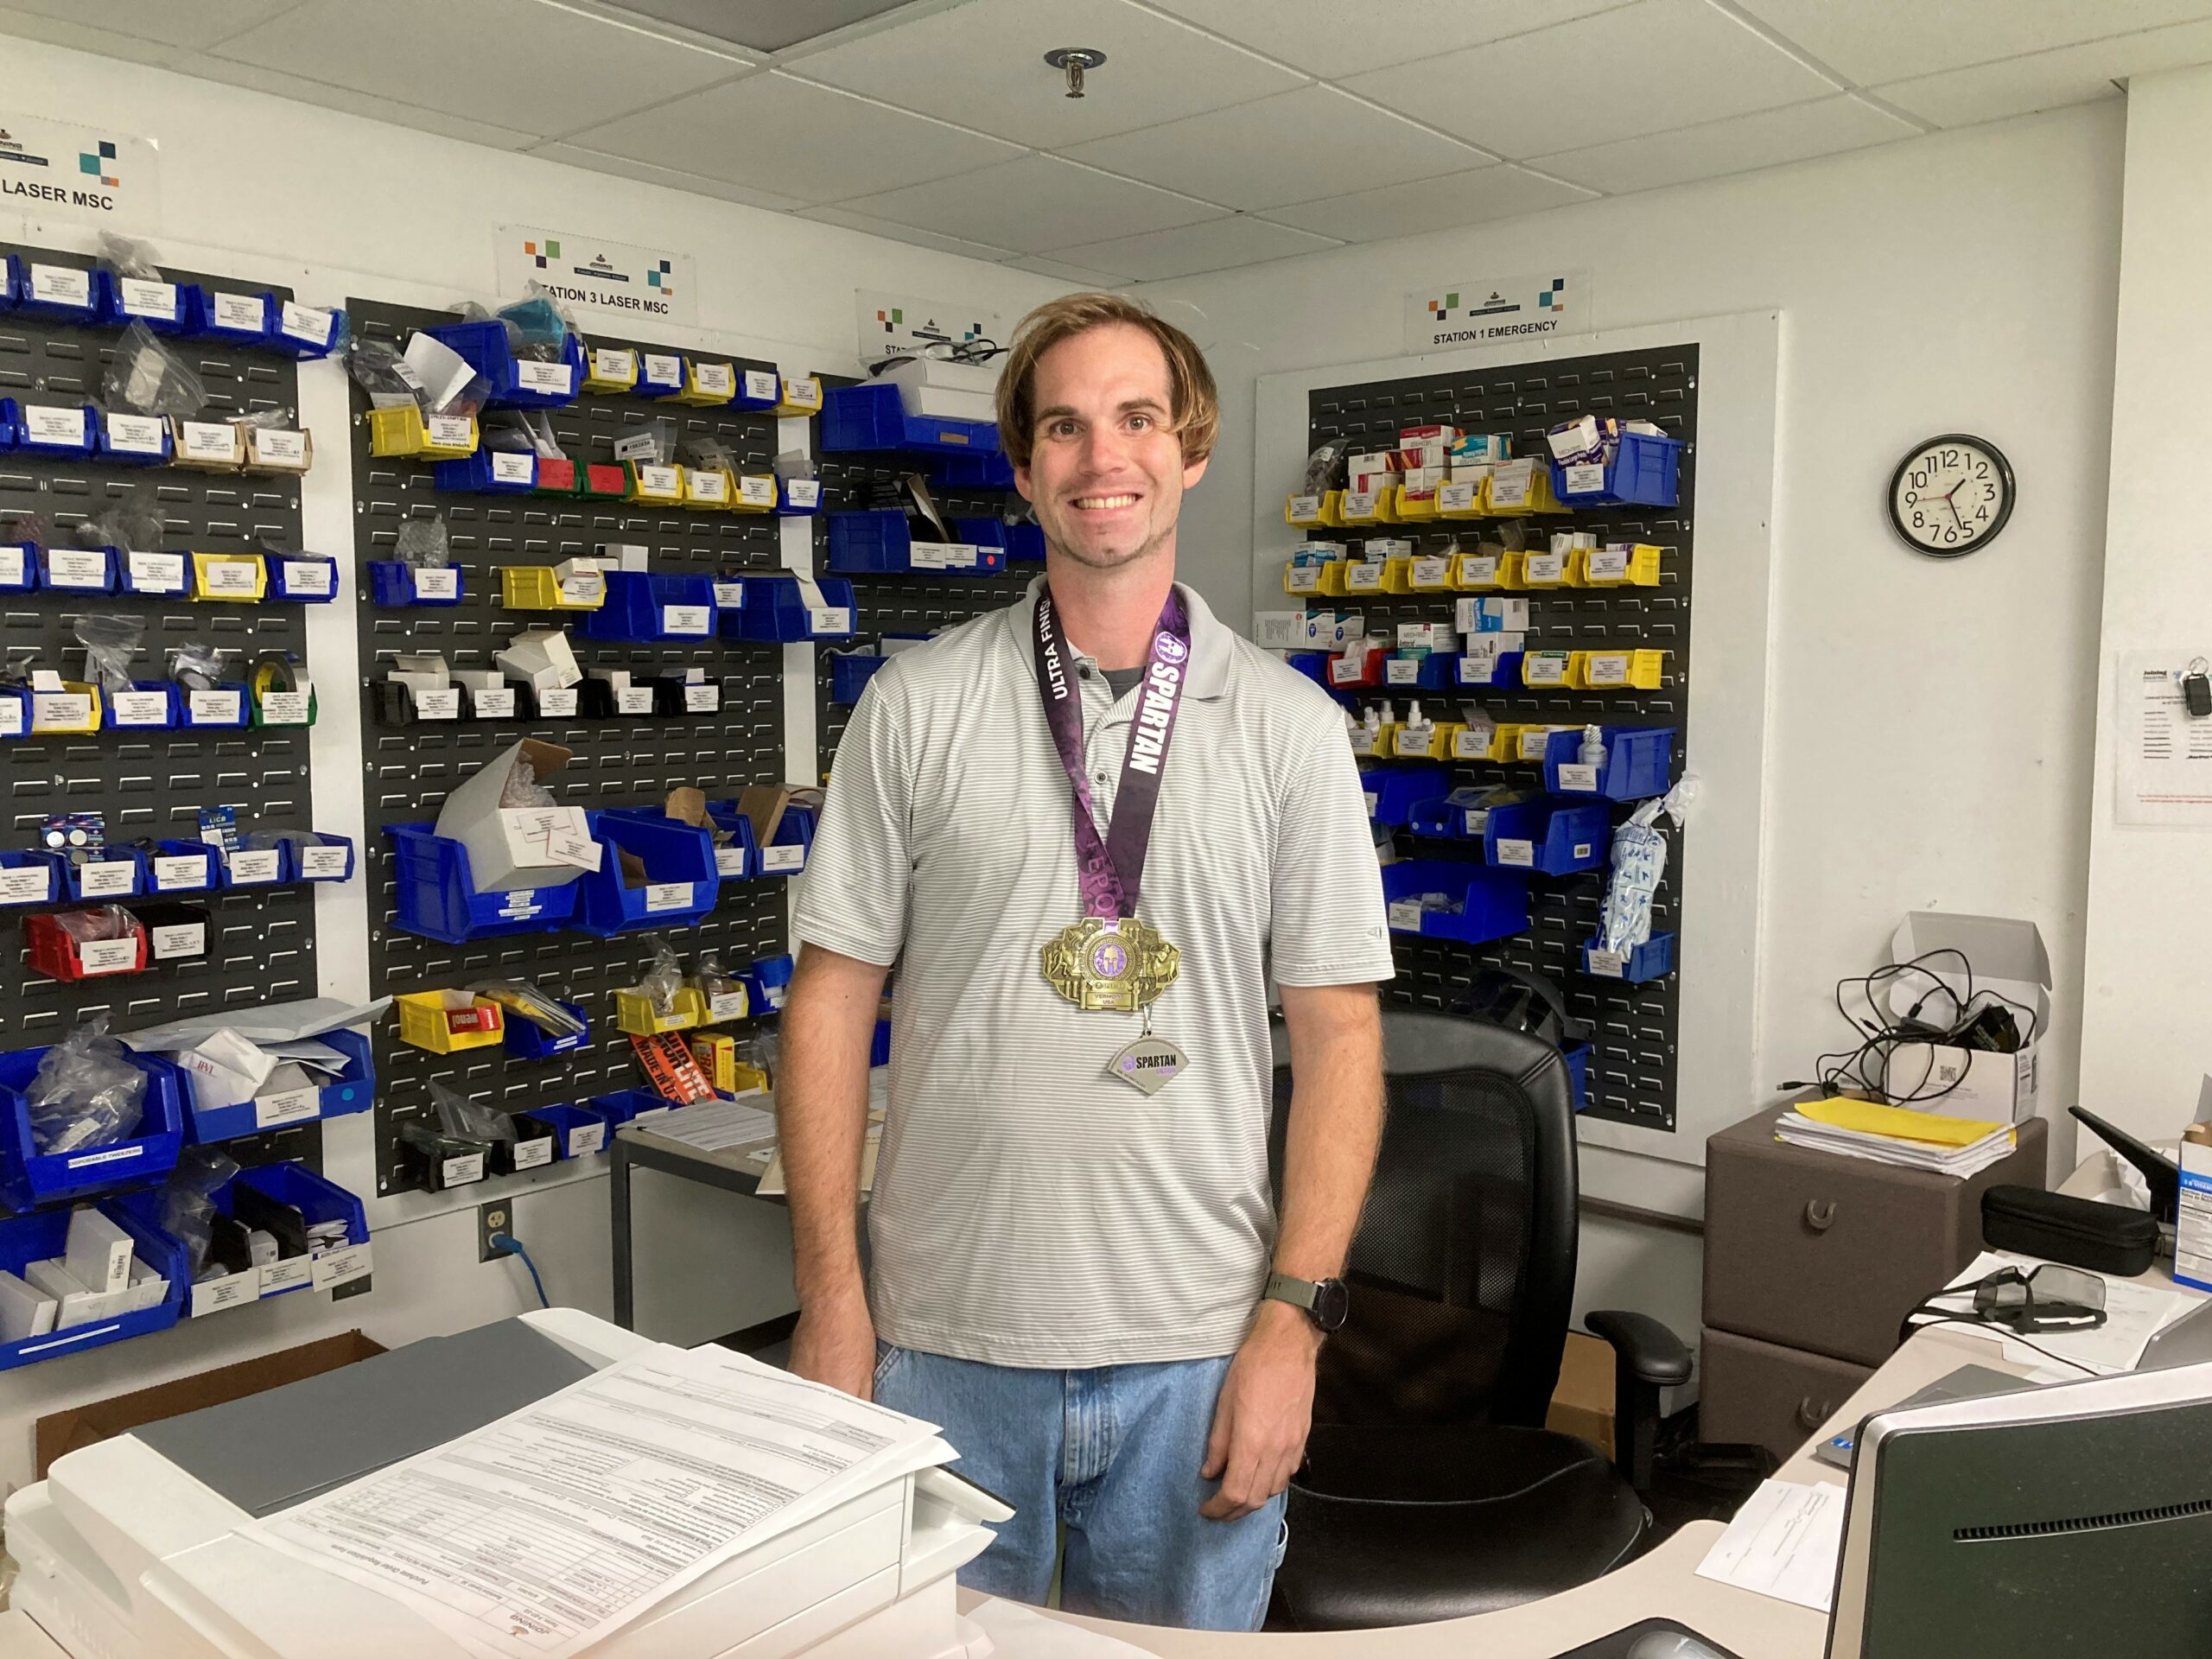 male employee poses with race medal